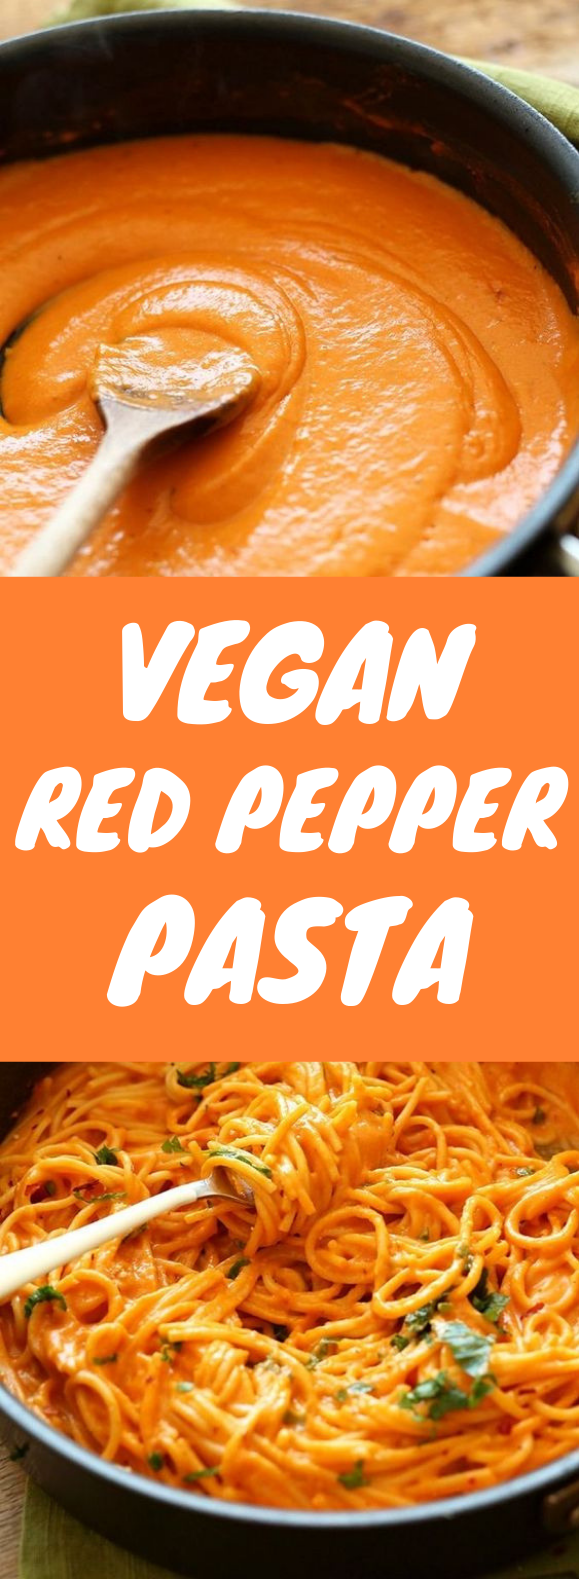 VEGAN ROASTED RED PEPPER PASTA (GF) #Vegan #Pasta